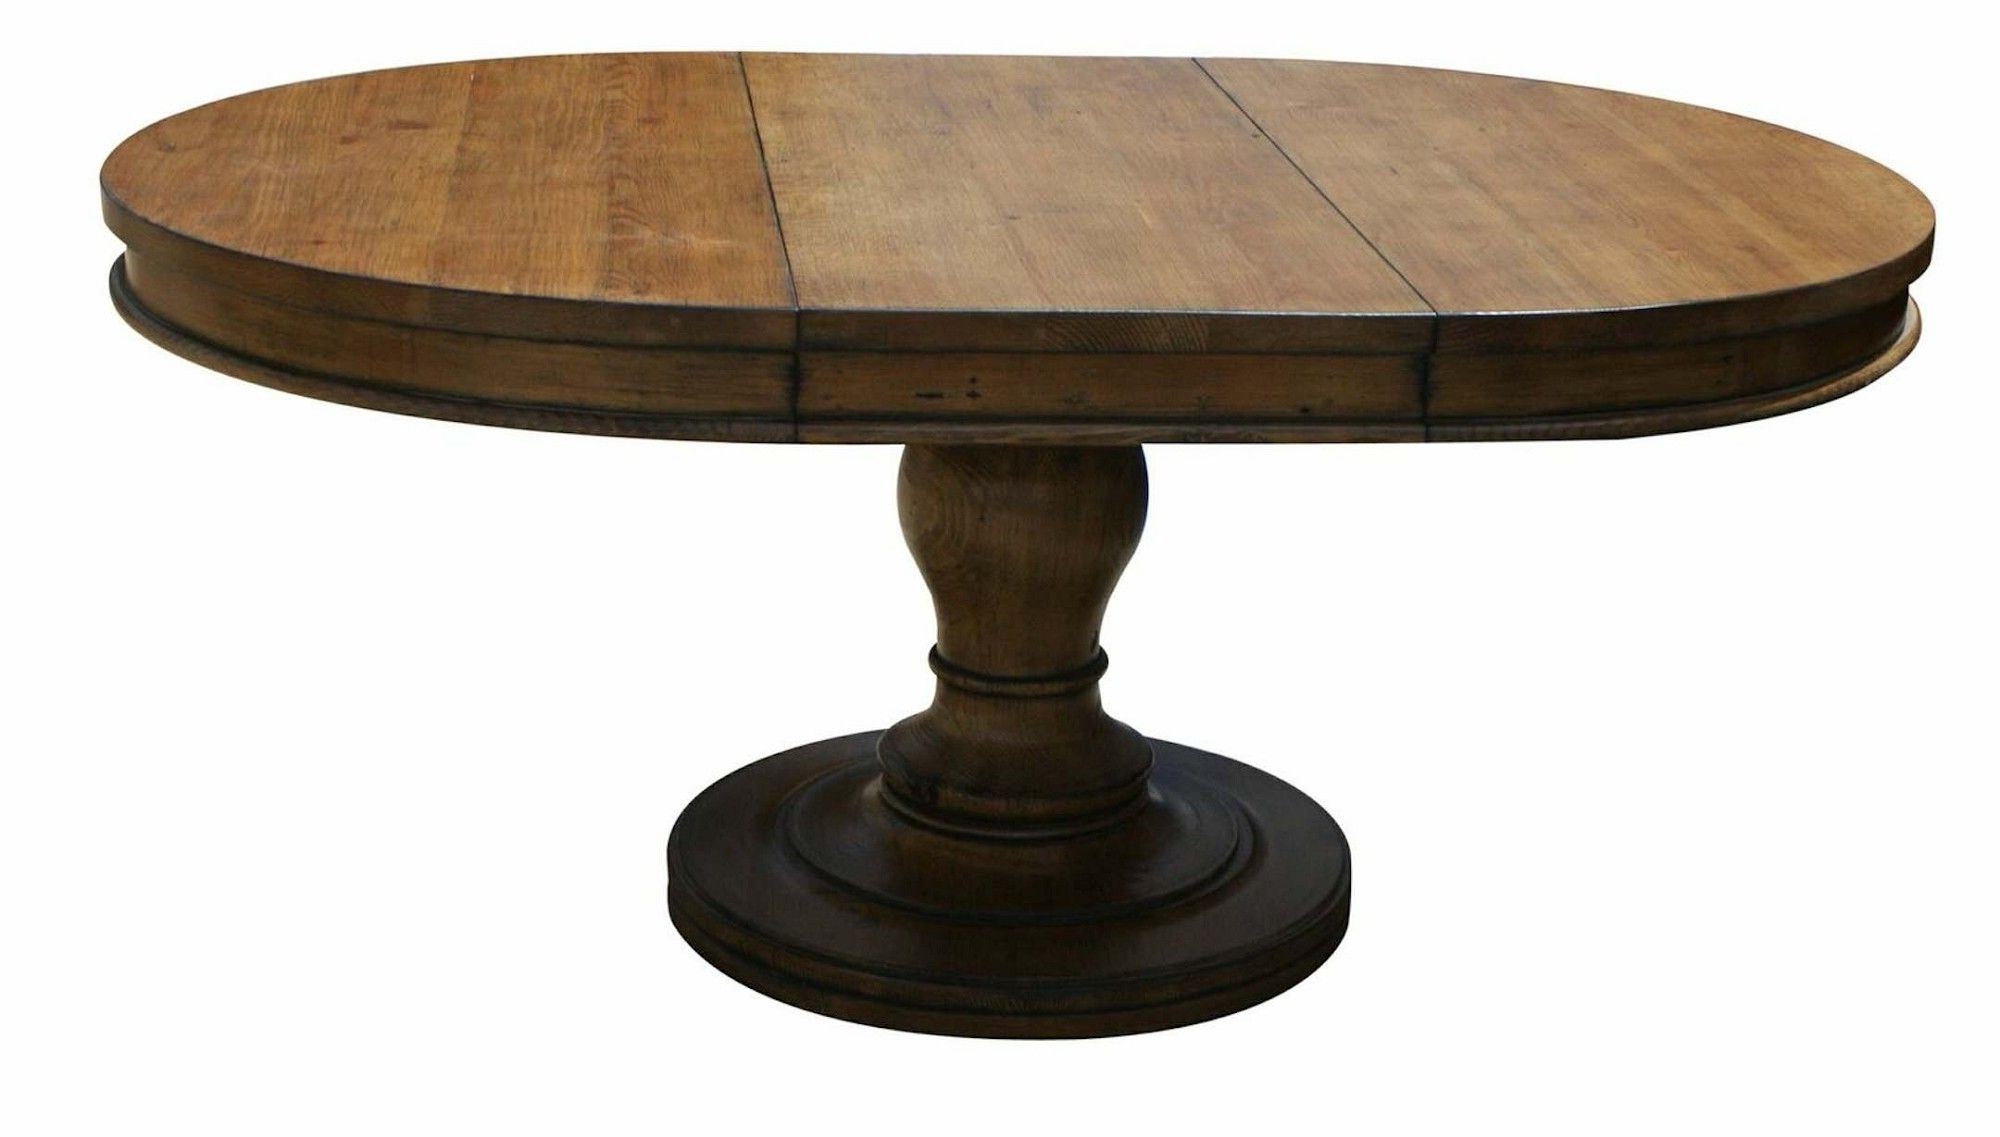 Oval Reclaimed Wood Dining Tables With Regard To Most Popular Appealing Oval Brown Lacquered Extendable Teak Wood Dining Table (View 15 of 25)